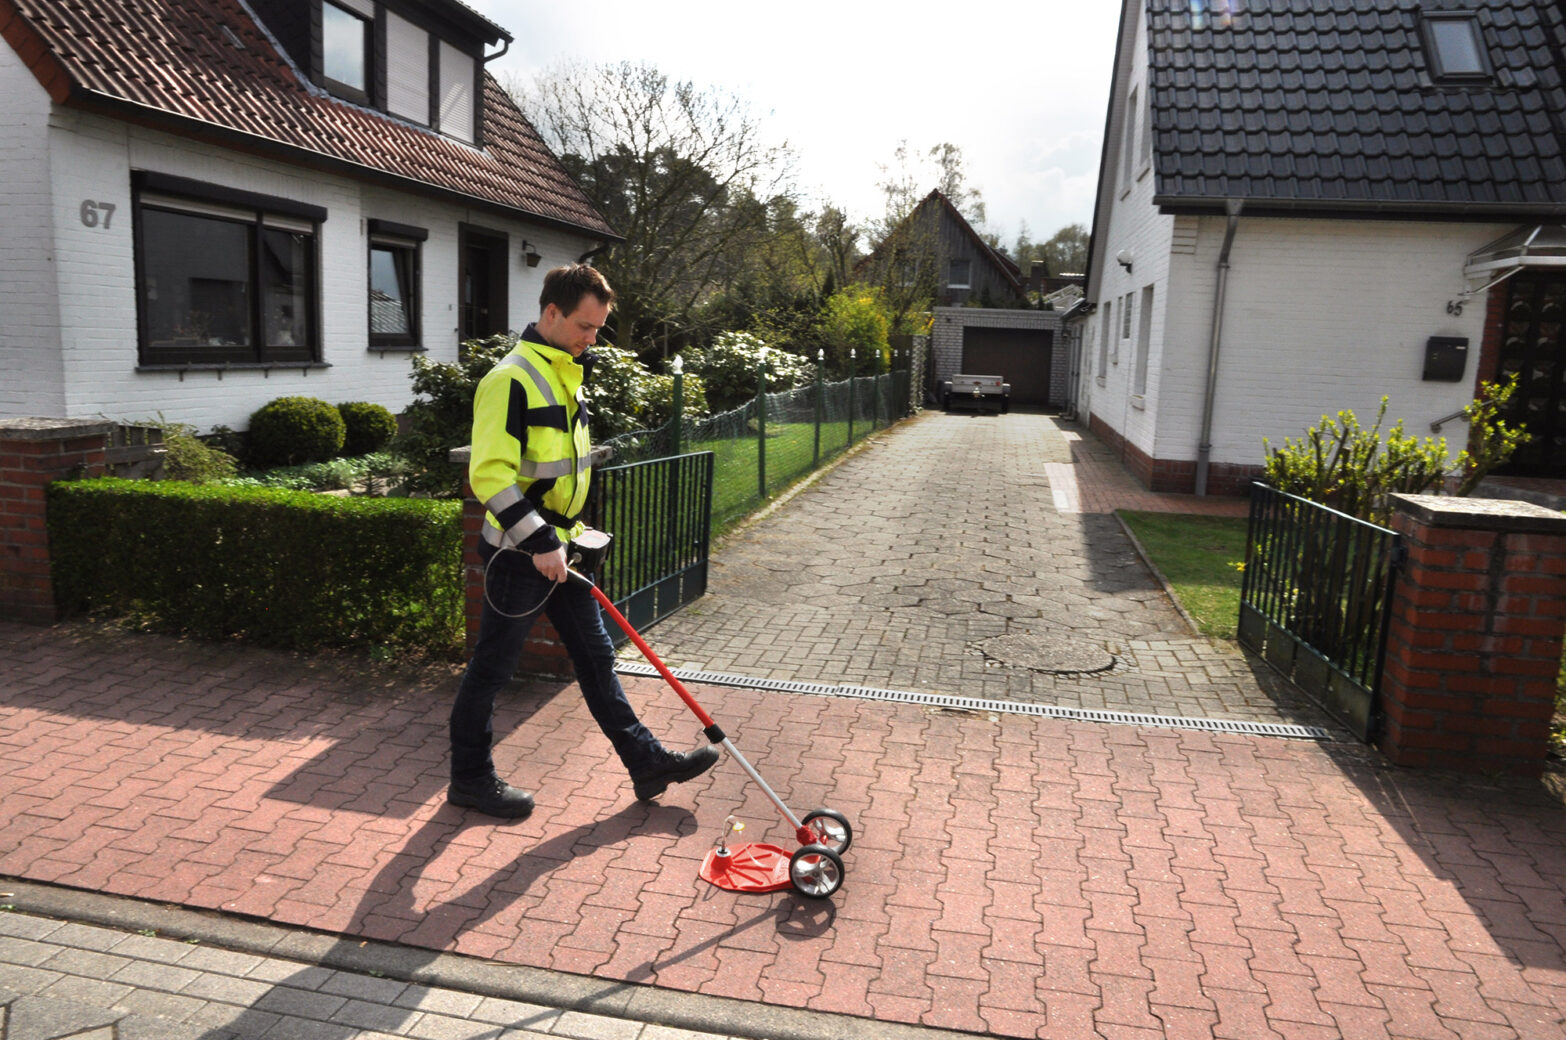 HUNTER certified for a walking speed of 5 km/h in the Netherlands